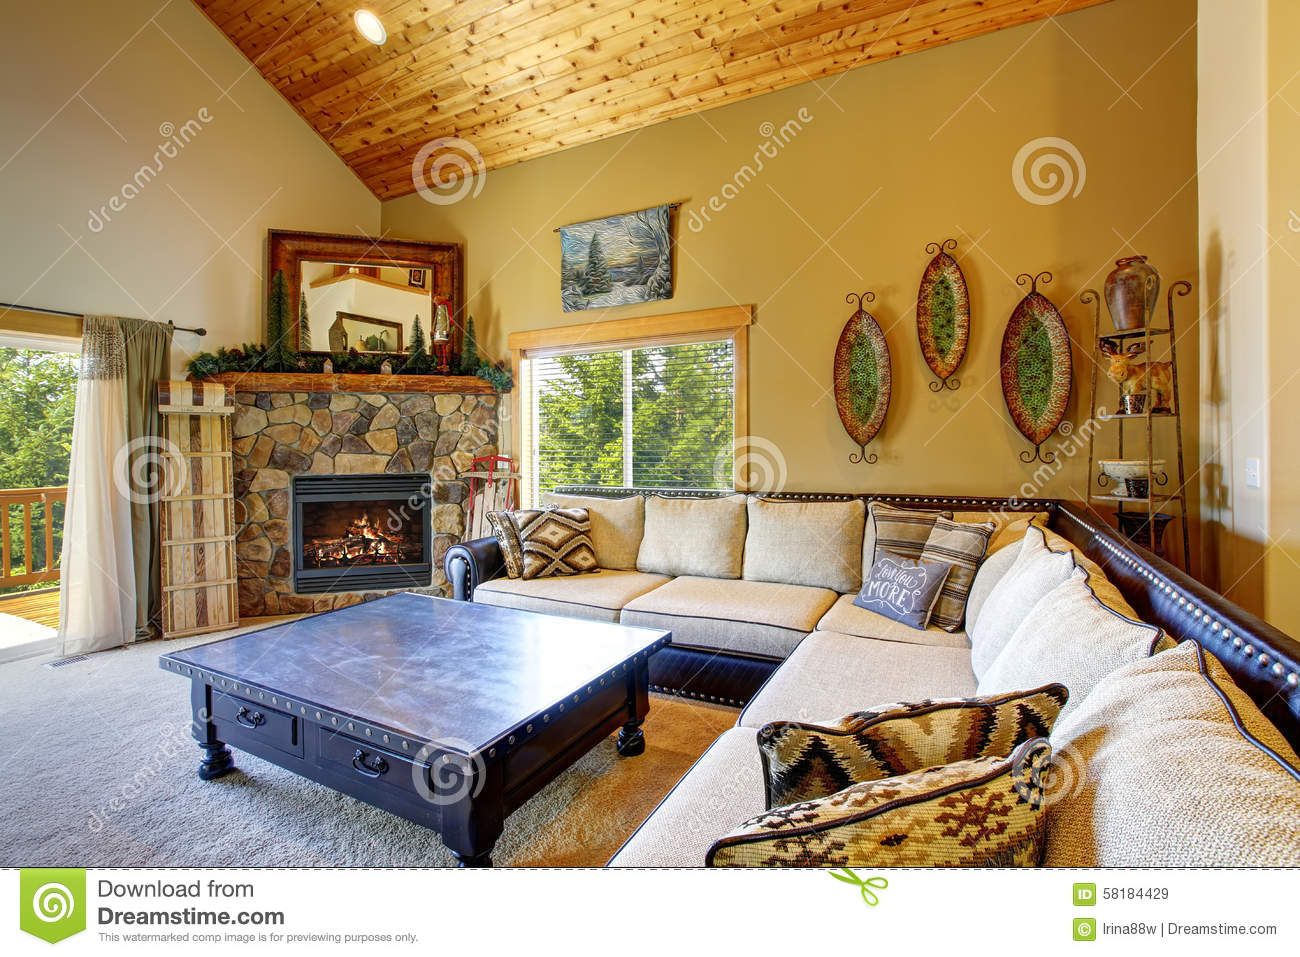 Mountain style decor in modern day living room stock for Modern day living room decor